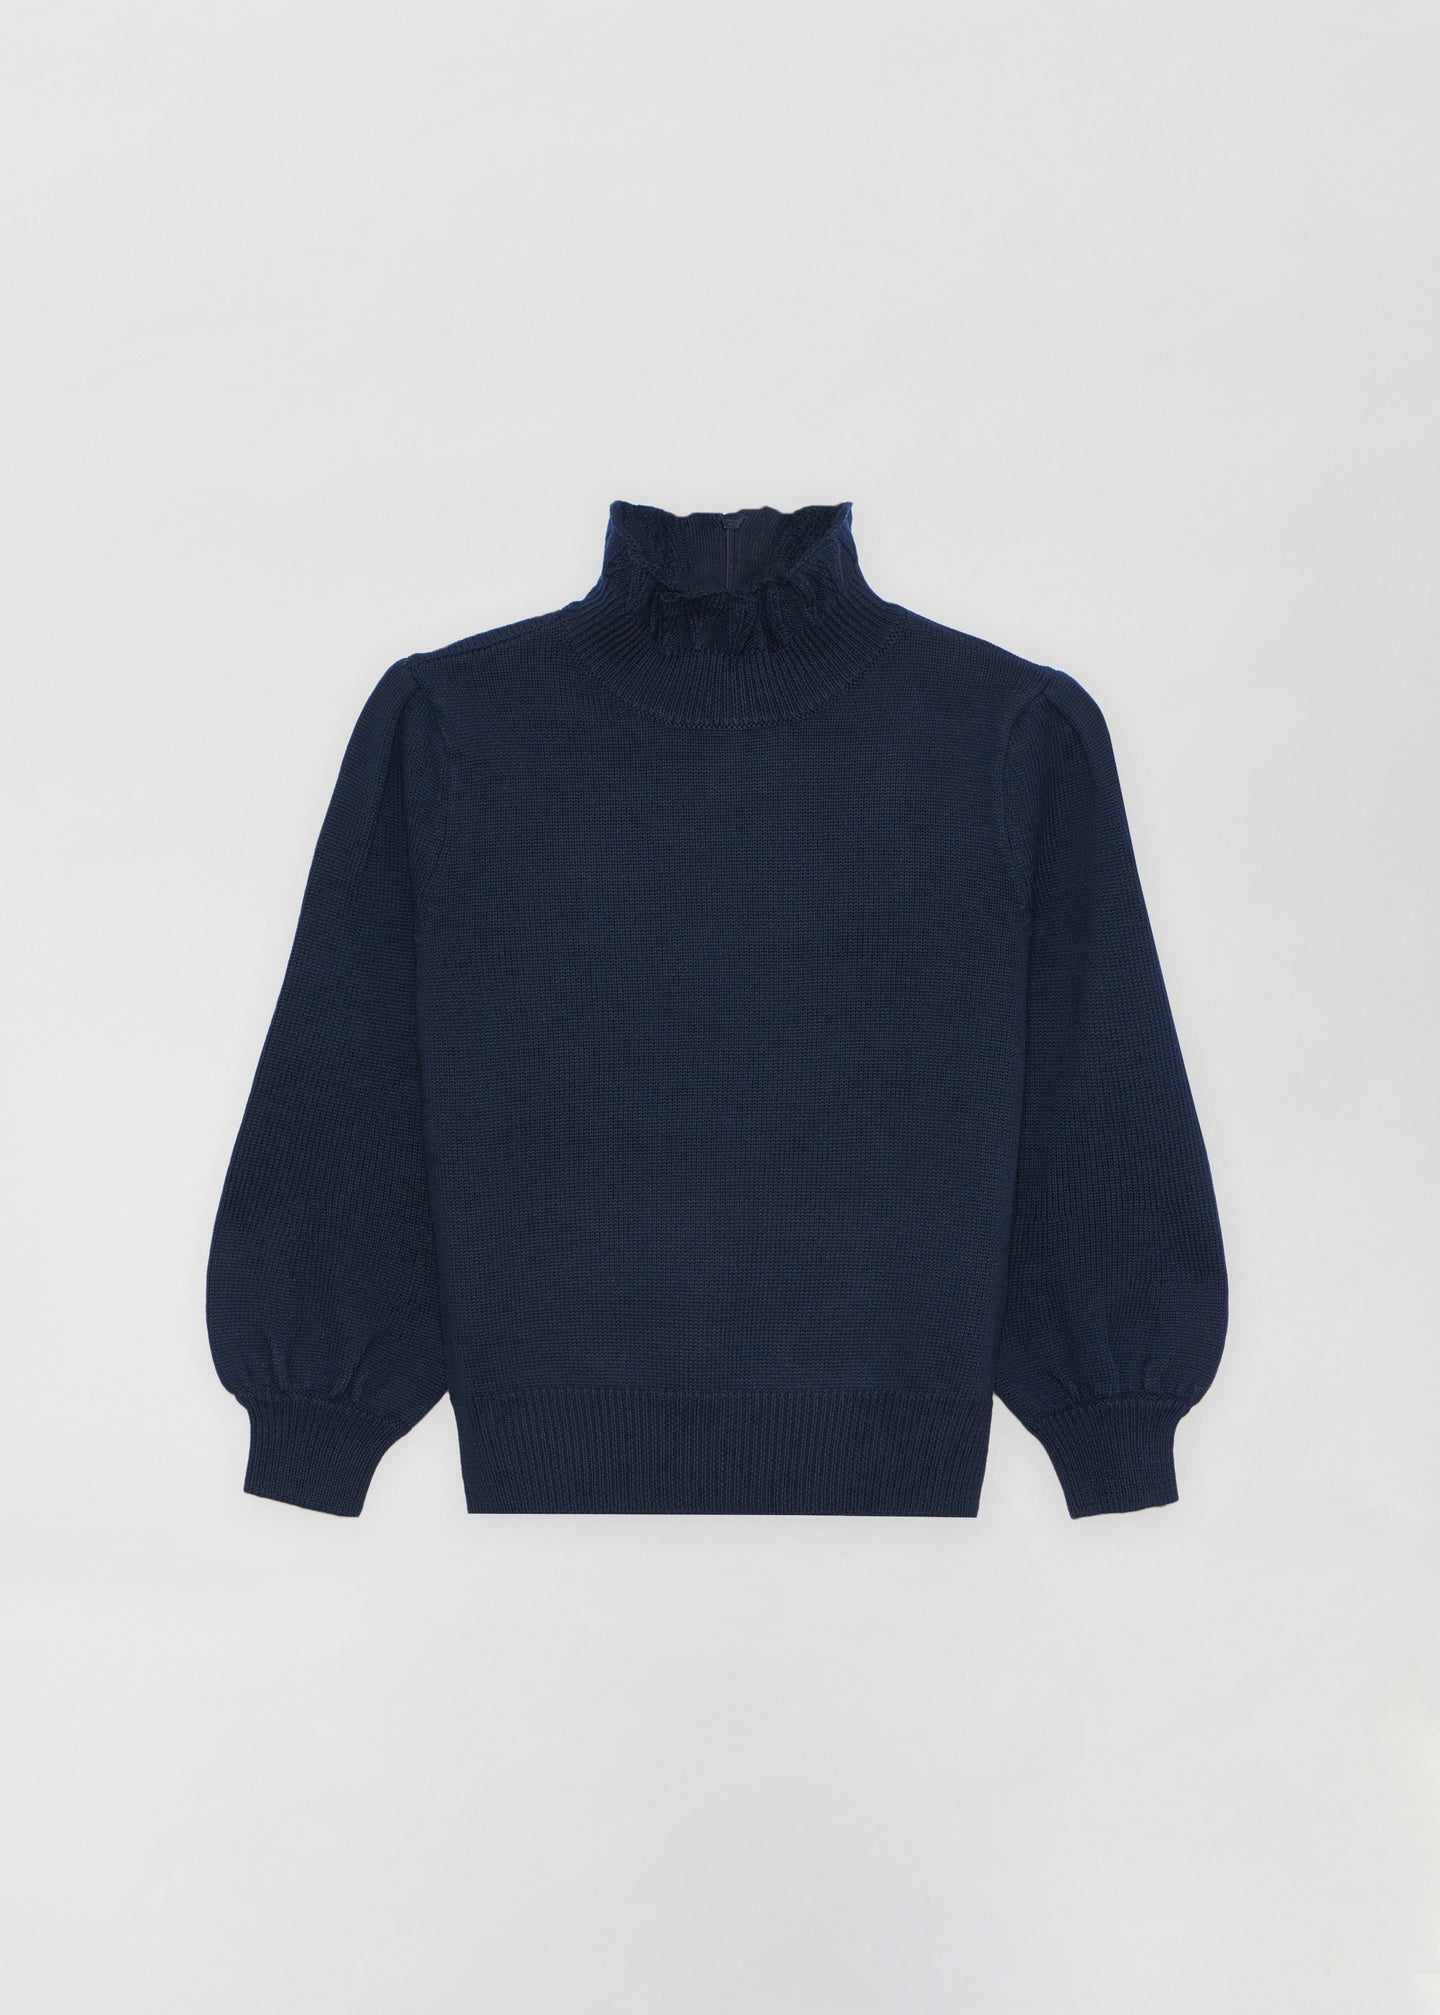 Ruffled Merino Wool Turtleneck - Navy - Co Collections